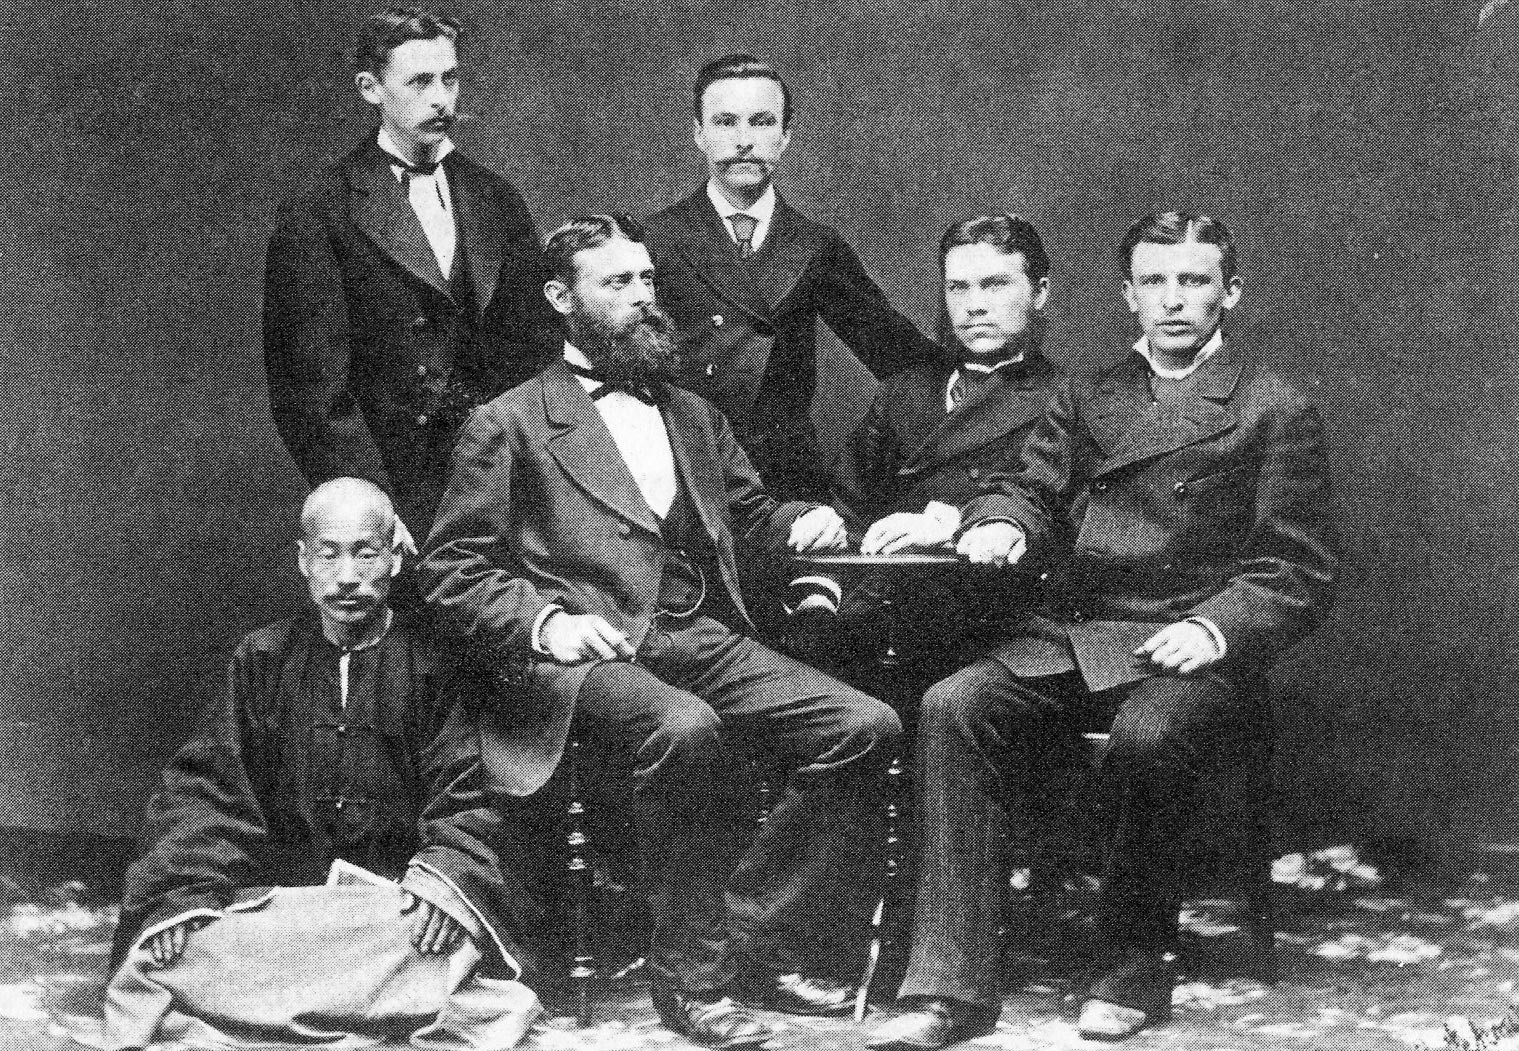 The two Gustavs, together with Adolf Dattan and partners